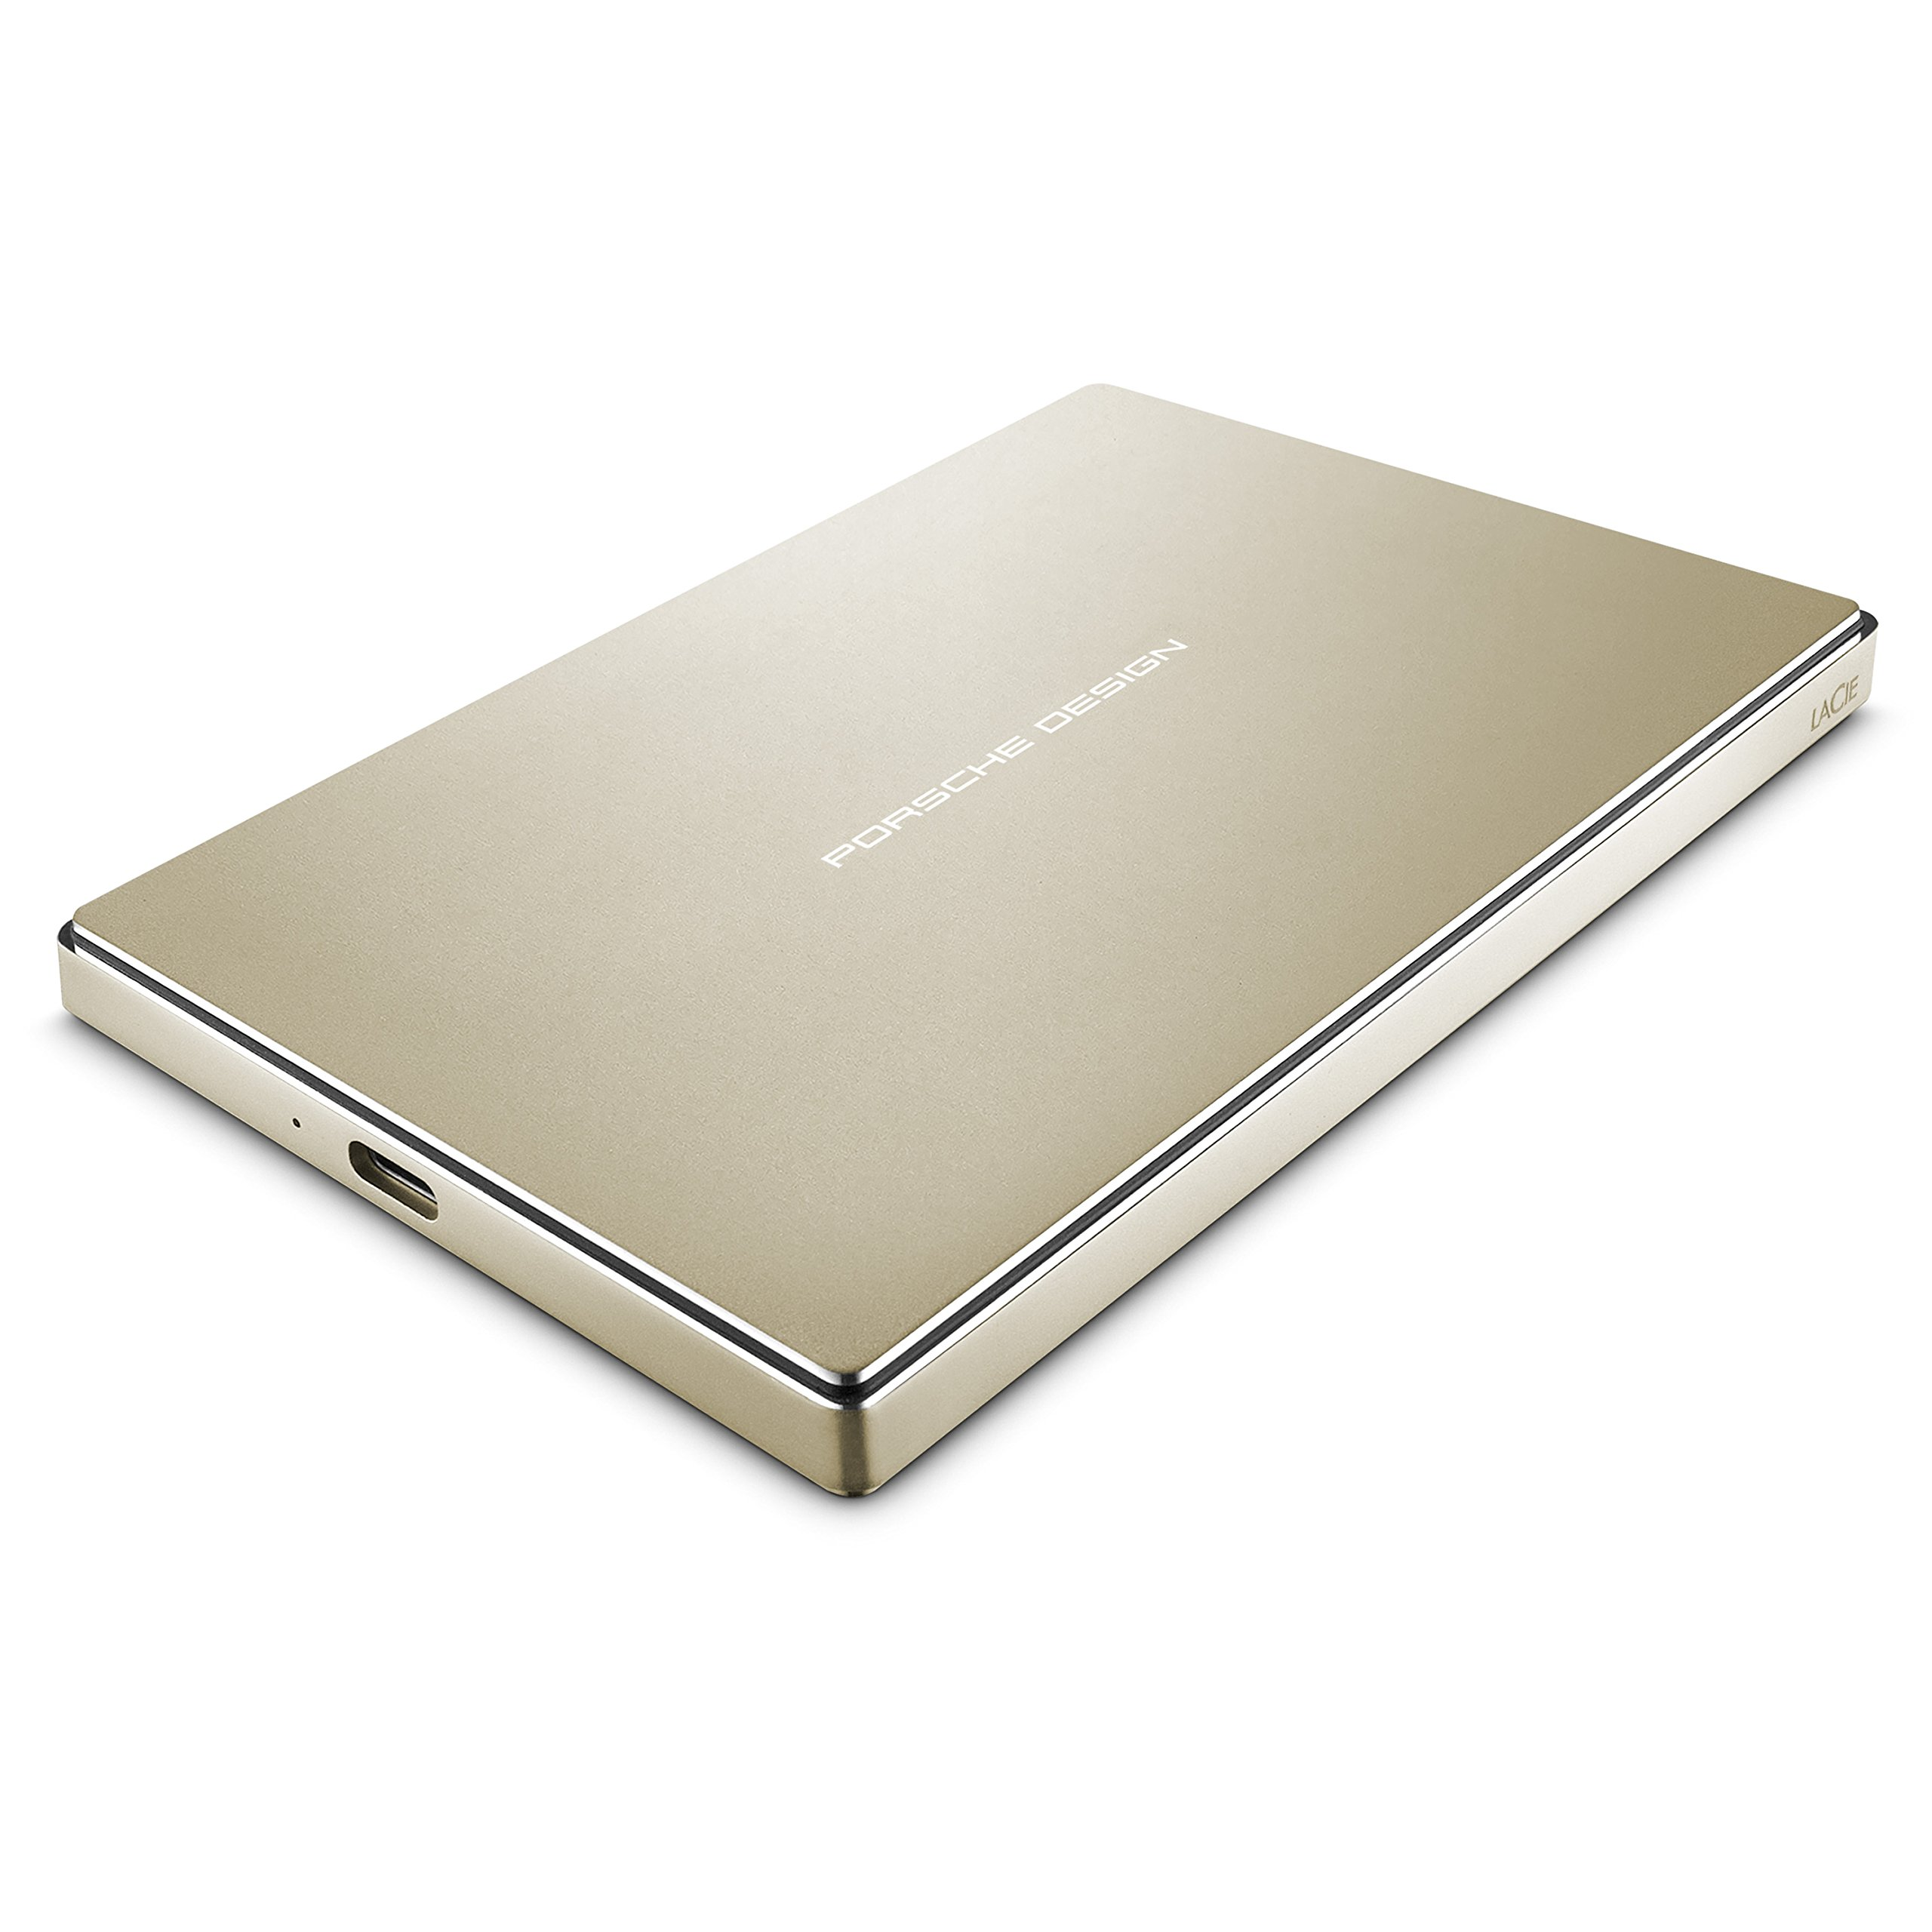 LaCie Porsche Design 2TB USB-C Mobile Hard Drive, Gold (STFD2000403) by LaCie